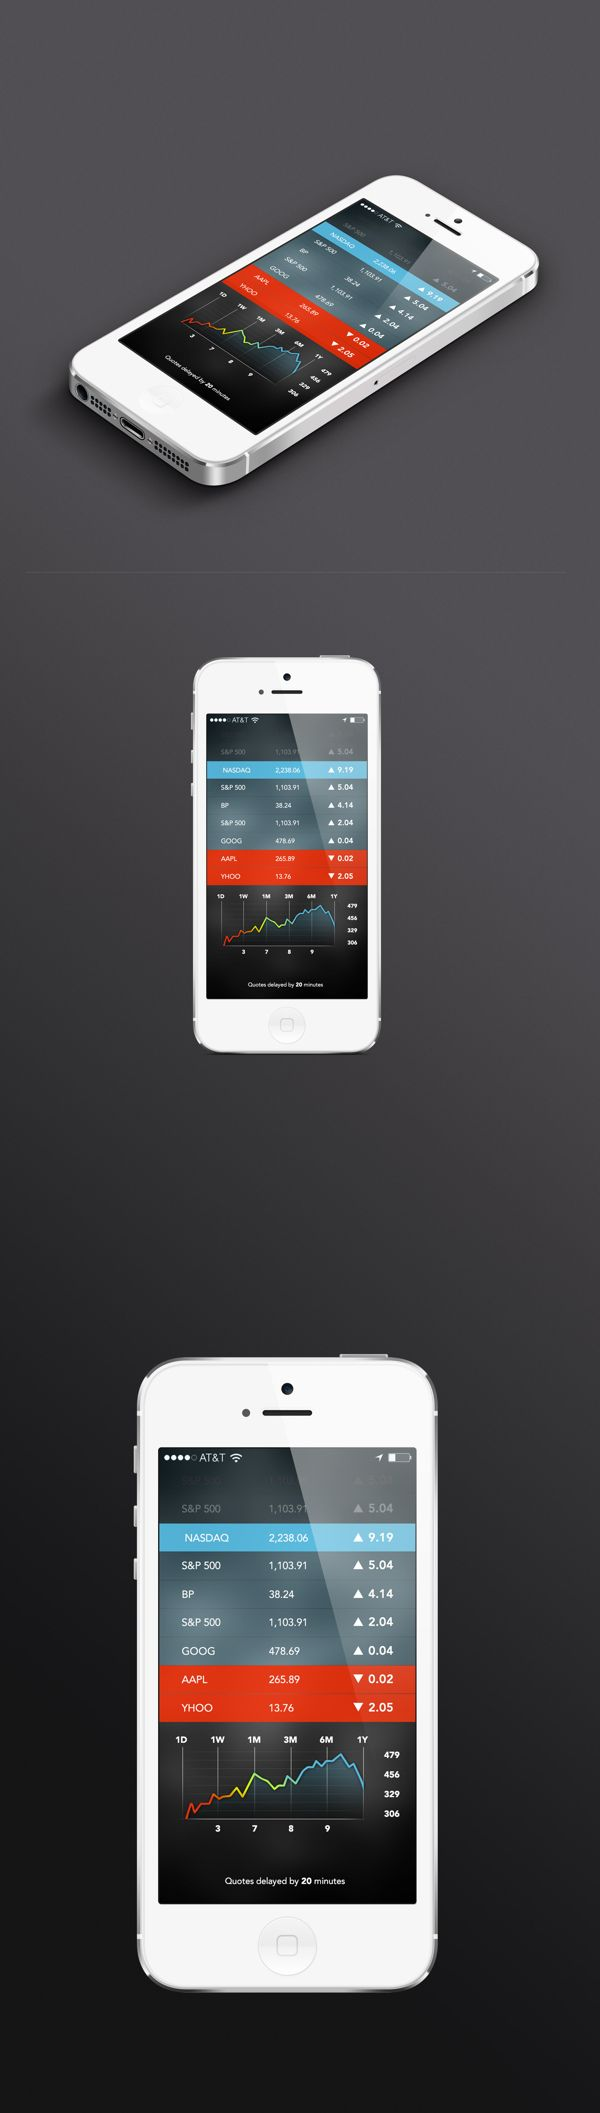 Mobile Stock app UI by Hyelim Choi, via Behance